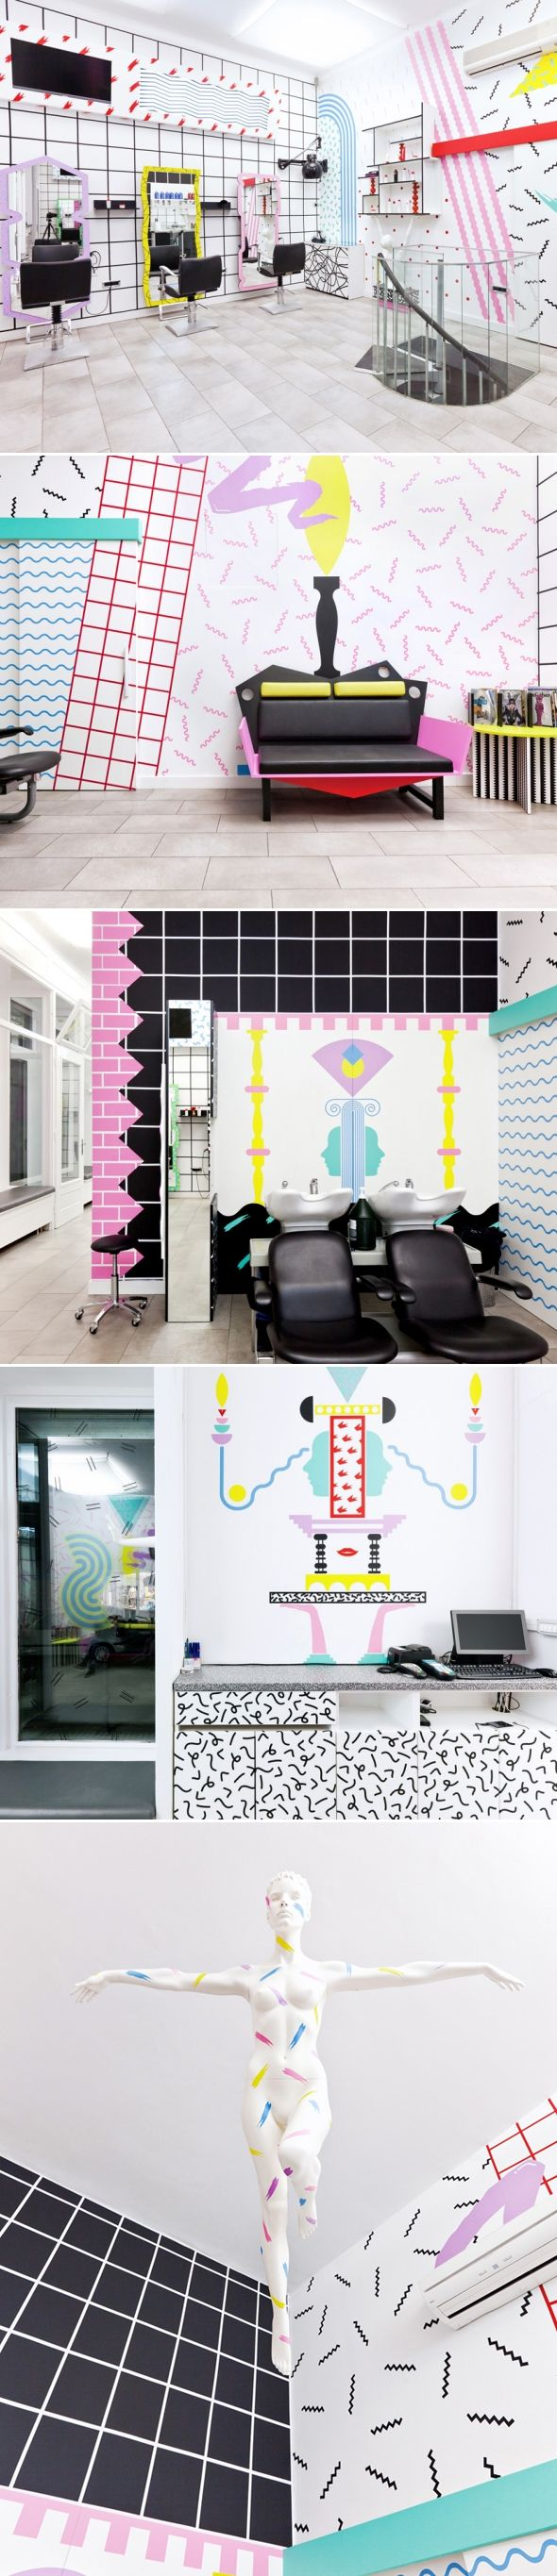 Salon de coiffure YMS par Kitsch Nitsch 2 @journaldudesign